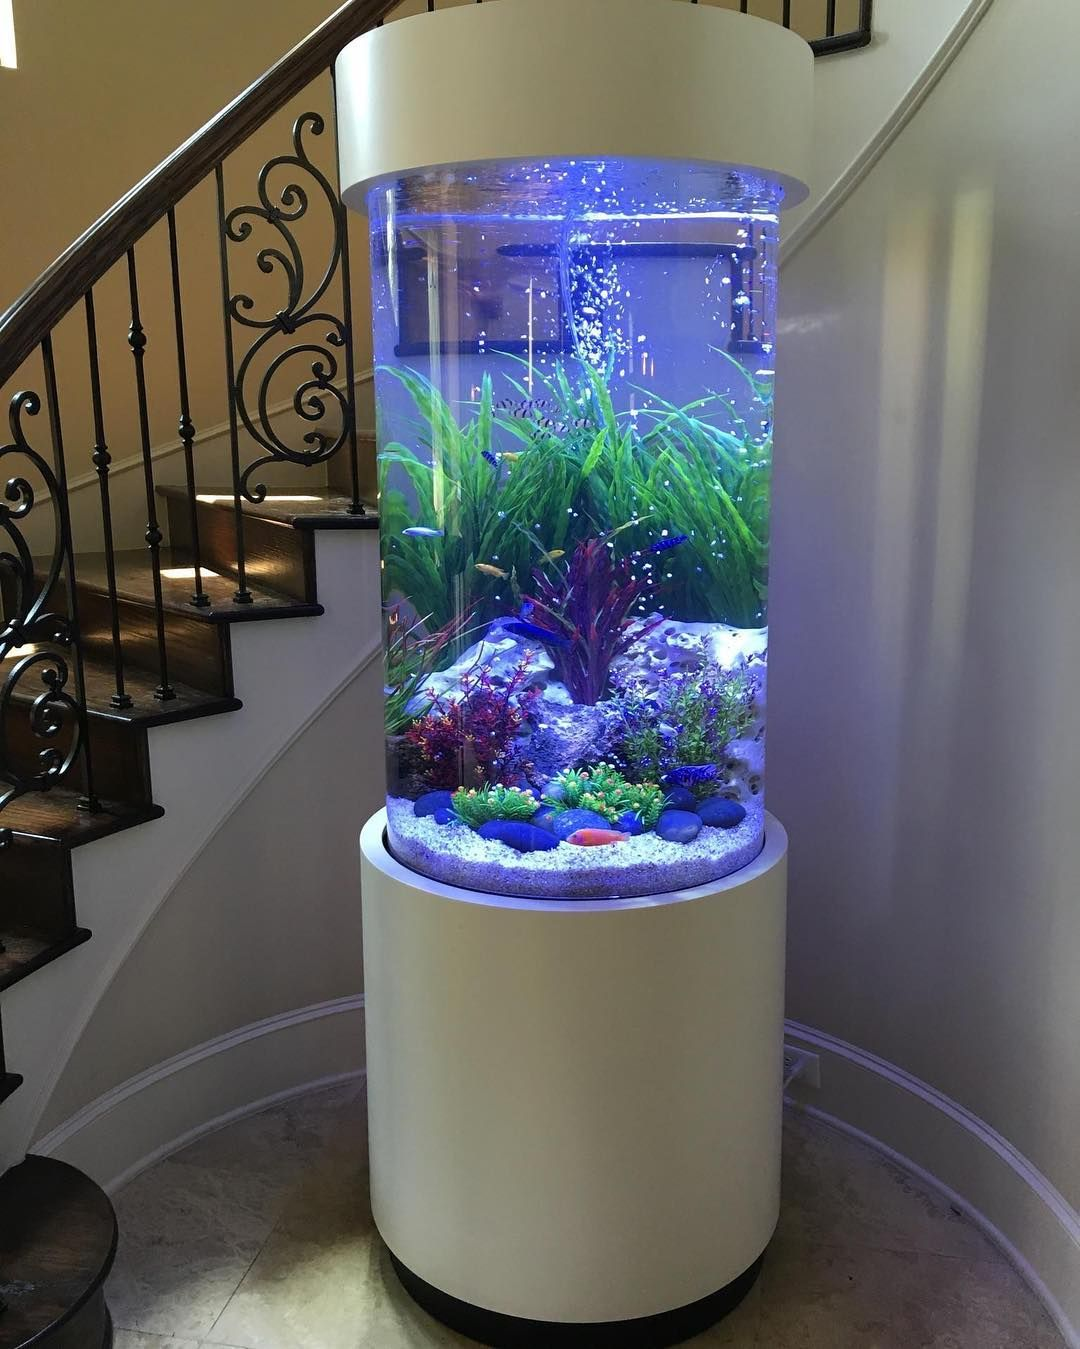 Feng Shui Aquarium Dalam Rumah We Did Some Work On This Gorgeous Cylinder This Morning This Nba